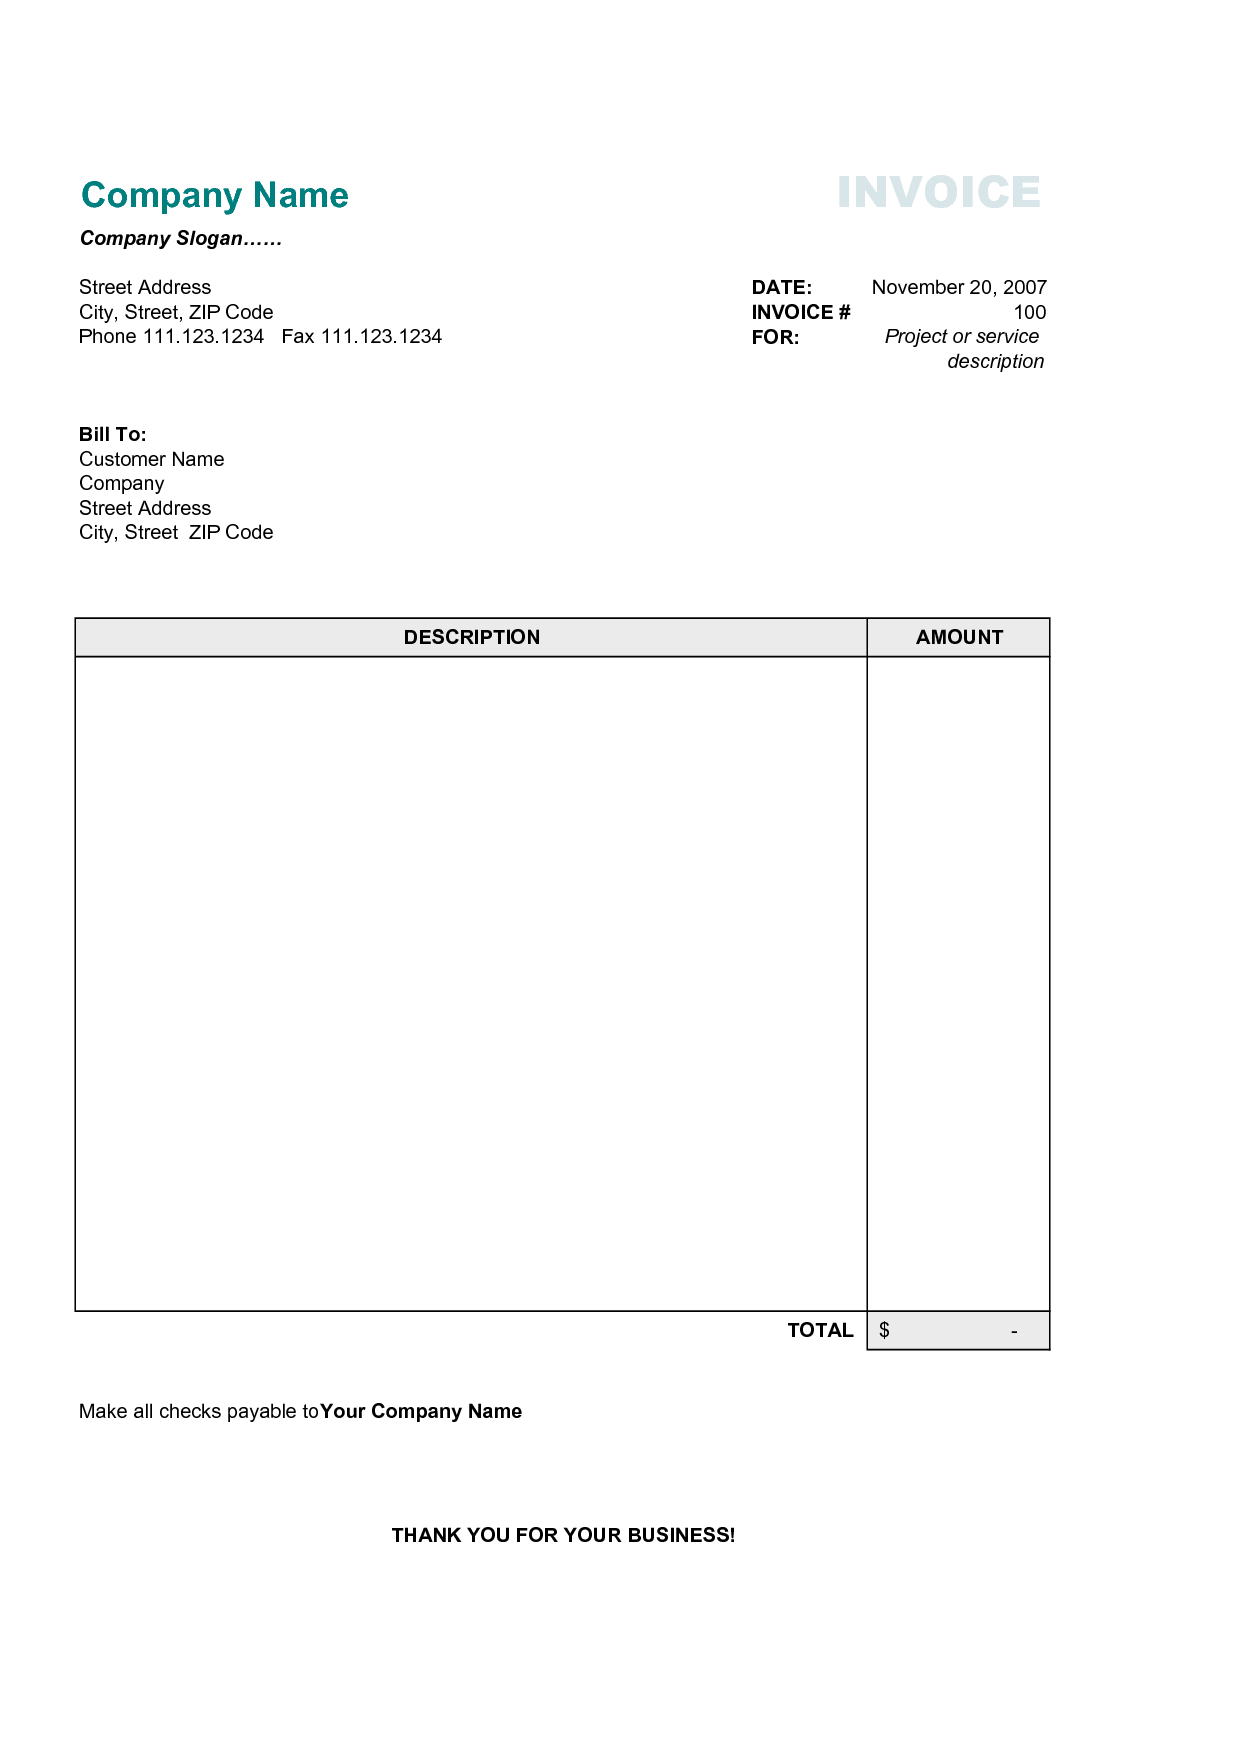 Free Small Business Invoice Template and Simple Invoice Template Free Invoice Example